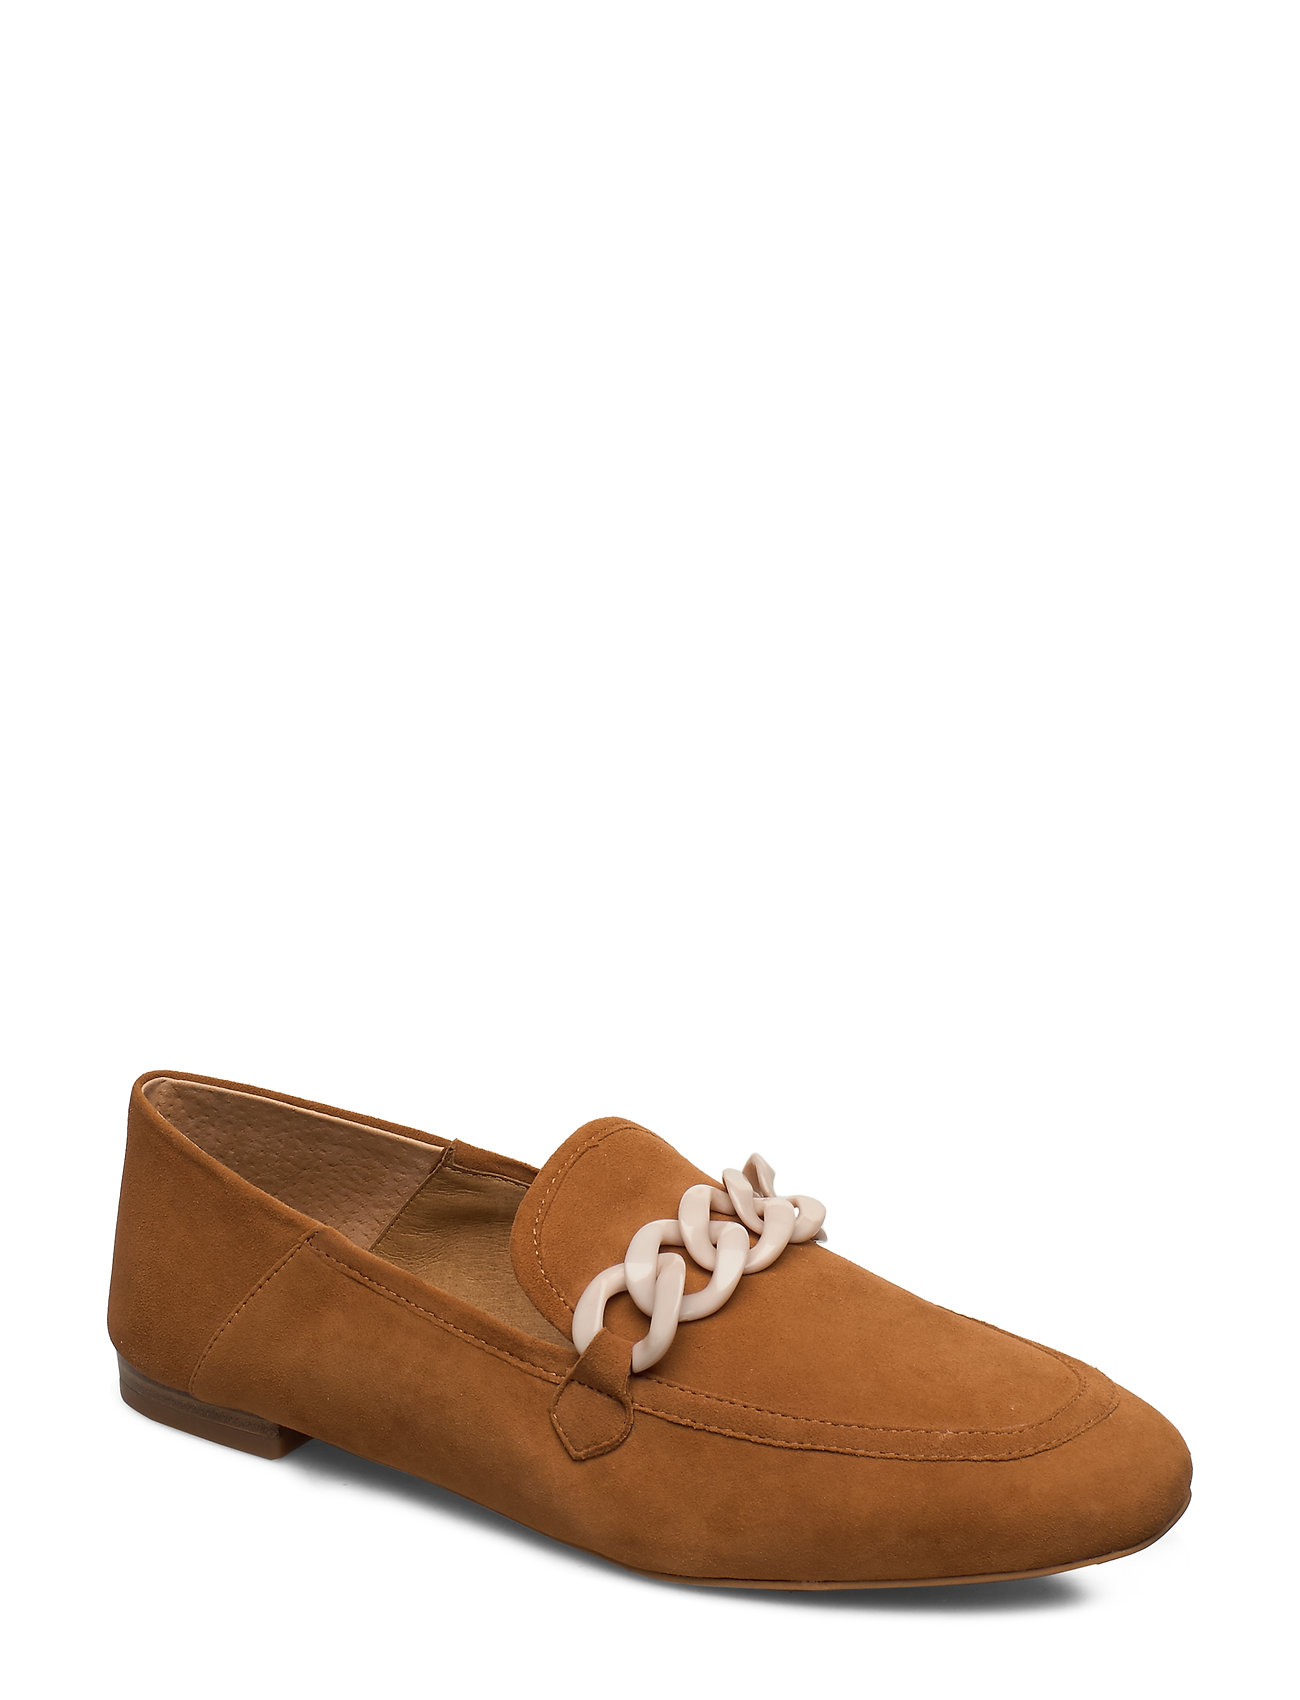 Image of Stb-Luna Chain S Loafers Flade Sko Brun Shoe The Bear (3356552503)